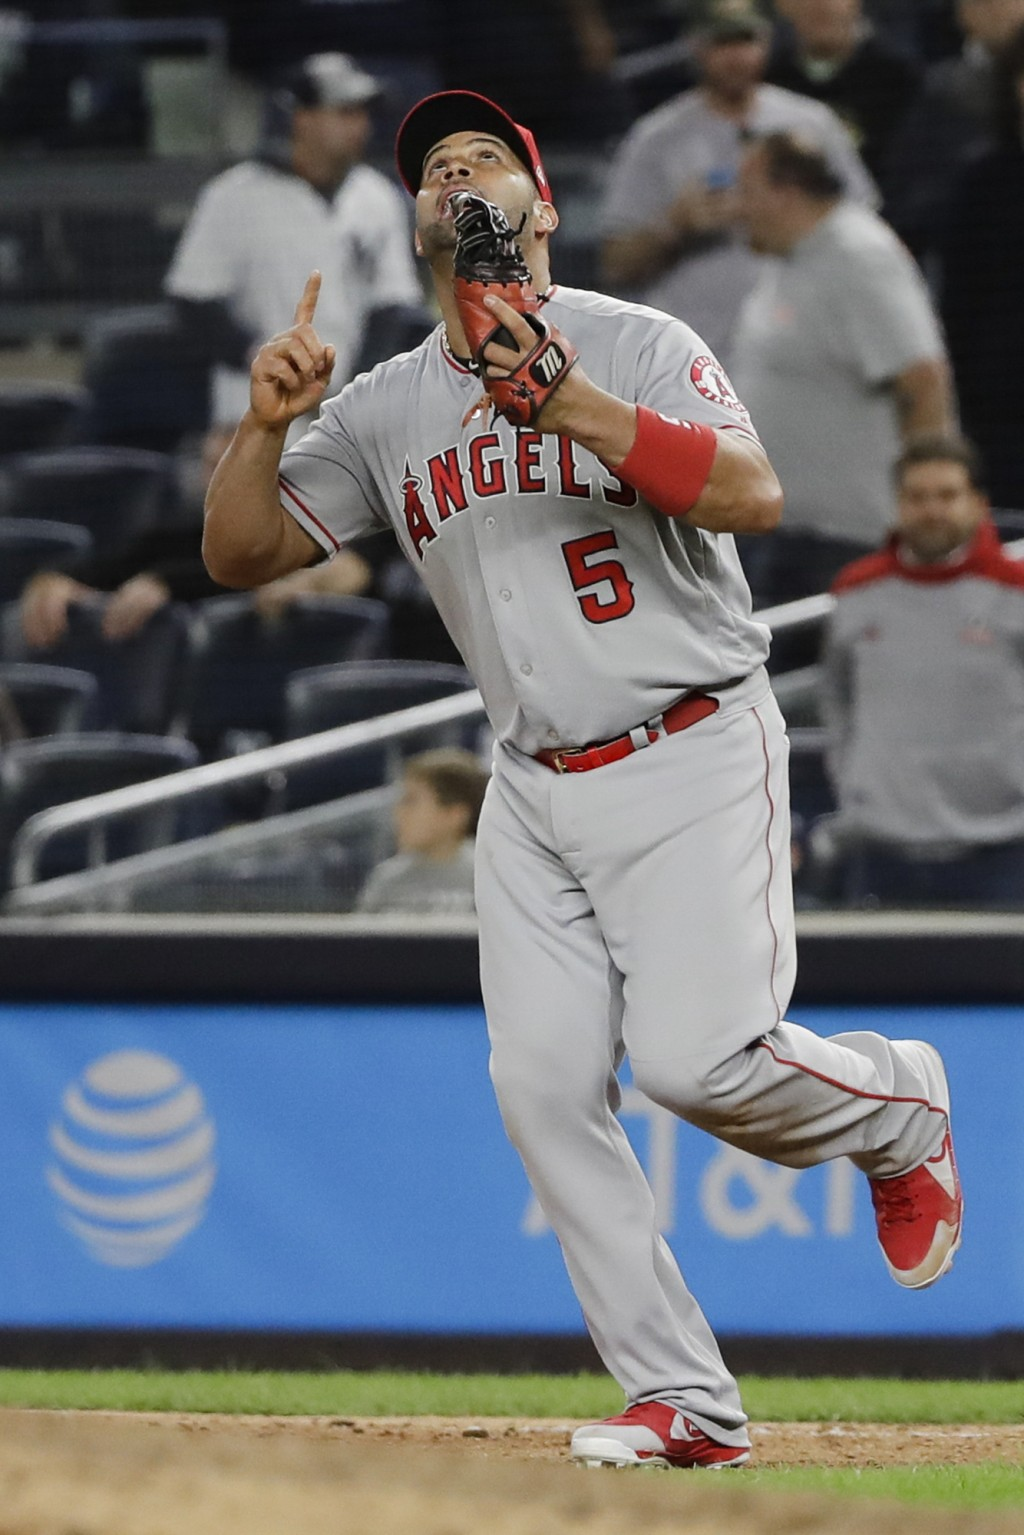 Los Angeles Angels first baseman Albert Pujols celebrates after the Angels' 3-2 win in a baseball game against the New York Yankees on Wednesday, Sept